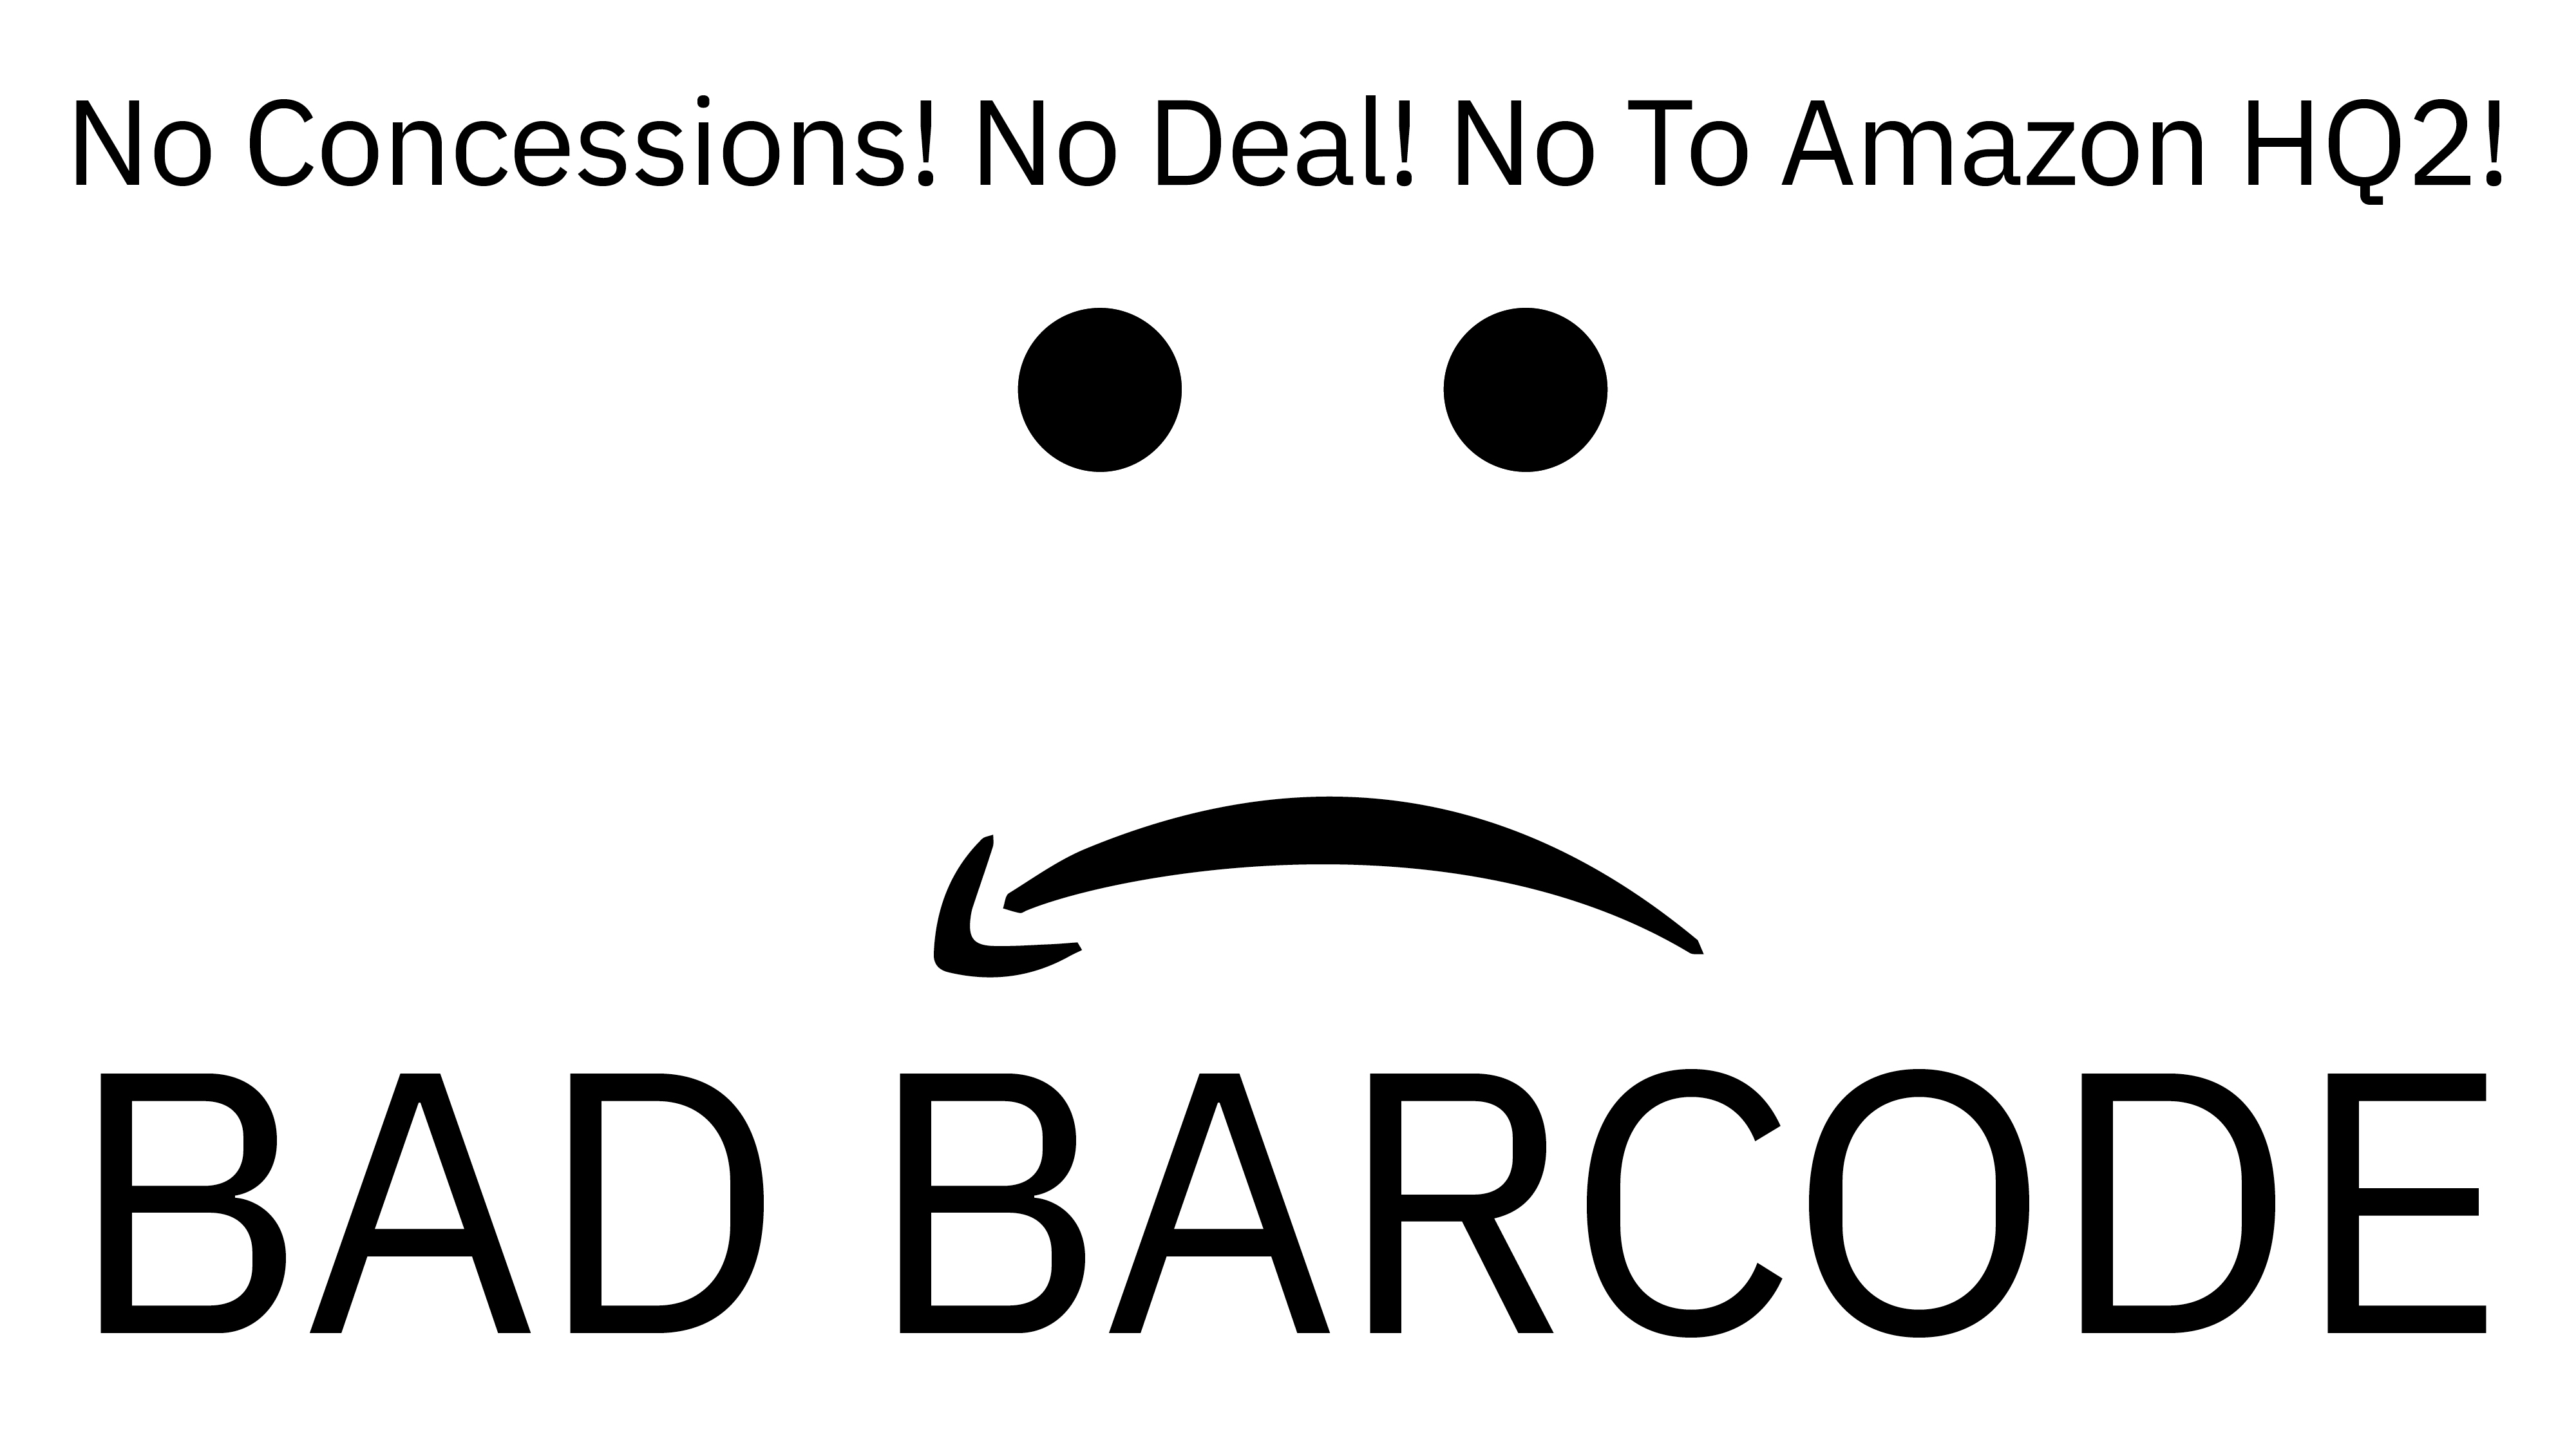 BAD BARCODE: NYC Cultural Workers Against Amazon - Frontpage - e